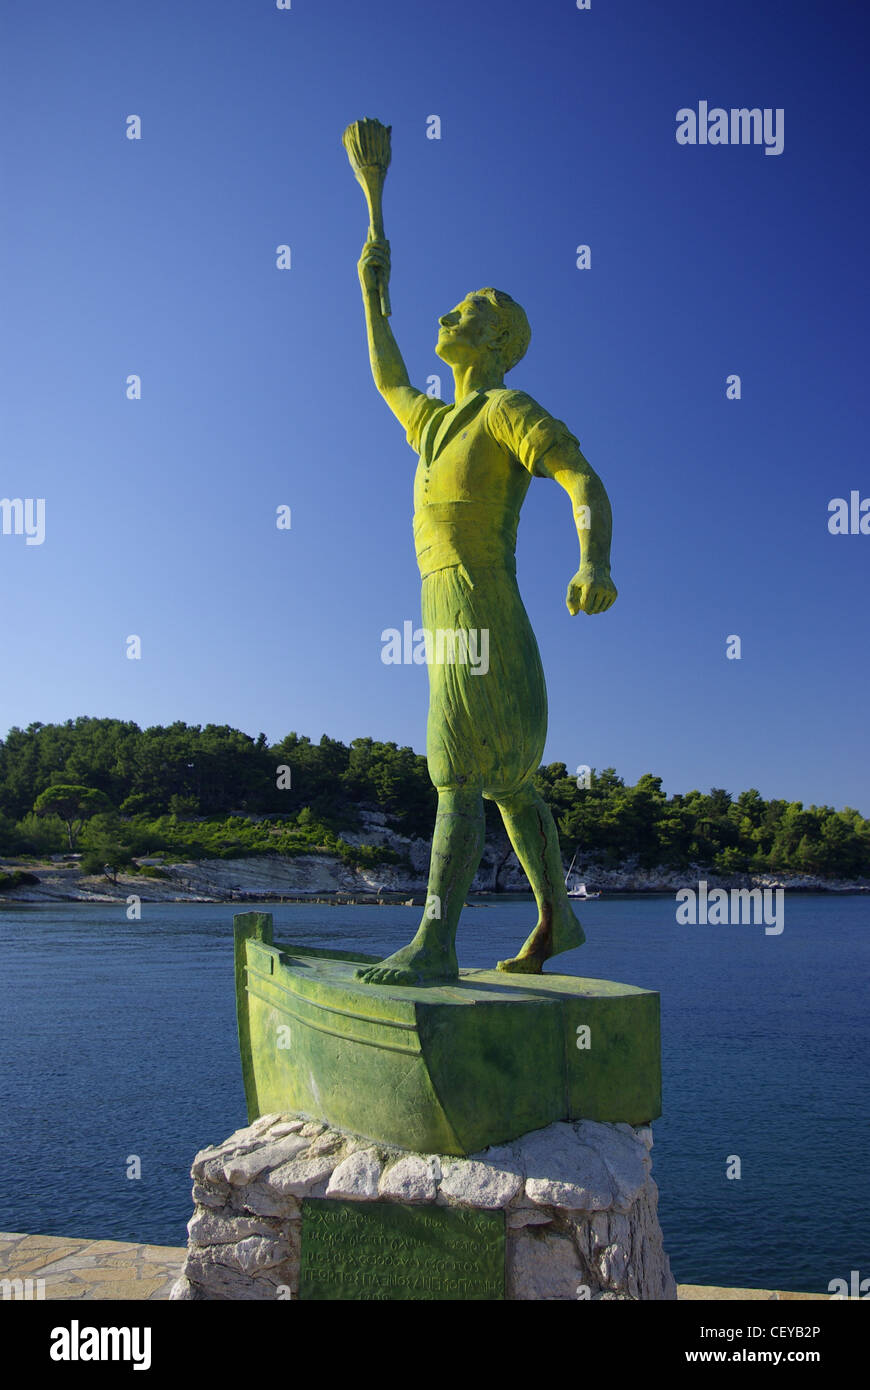 The statue of  Georgios Anemogiannis at the entrance of Gaios harbour, on the island of Paxos, Greece - Stock Image